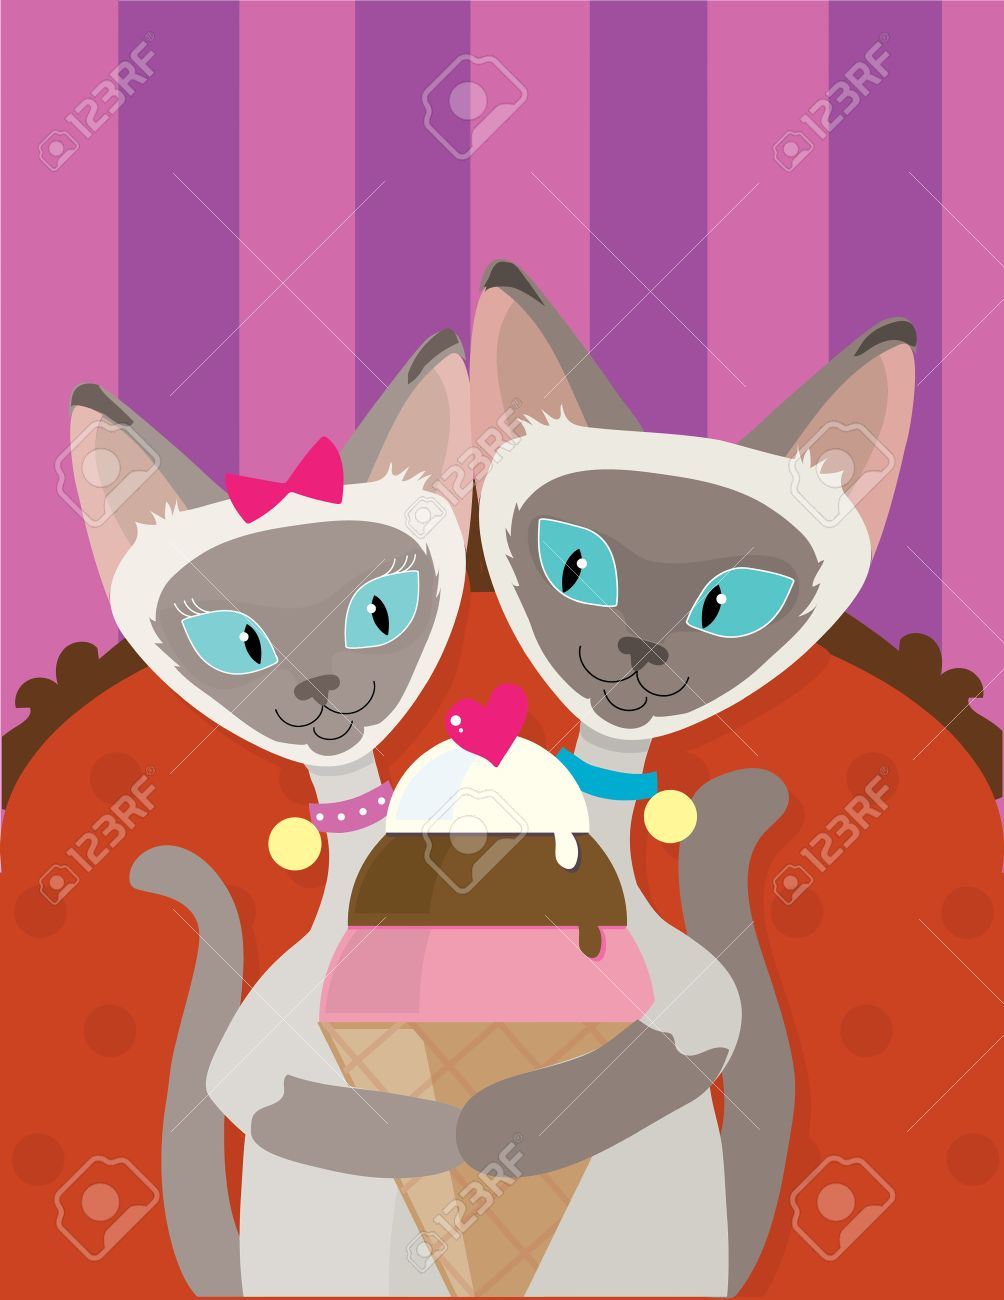 A pair of Siamese Cats are enjoying an ice cream cone together - 54129259